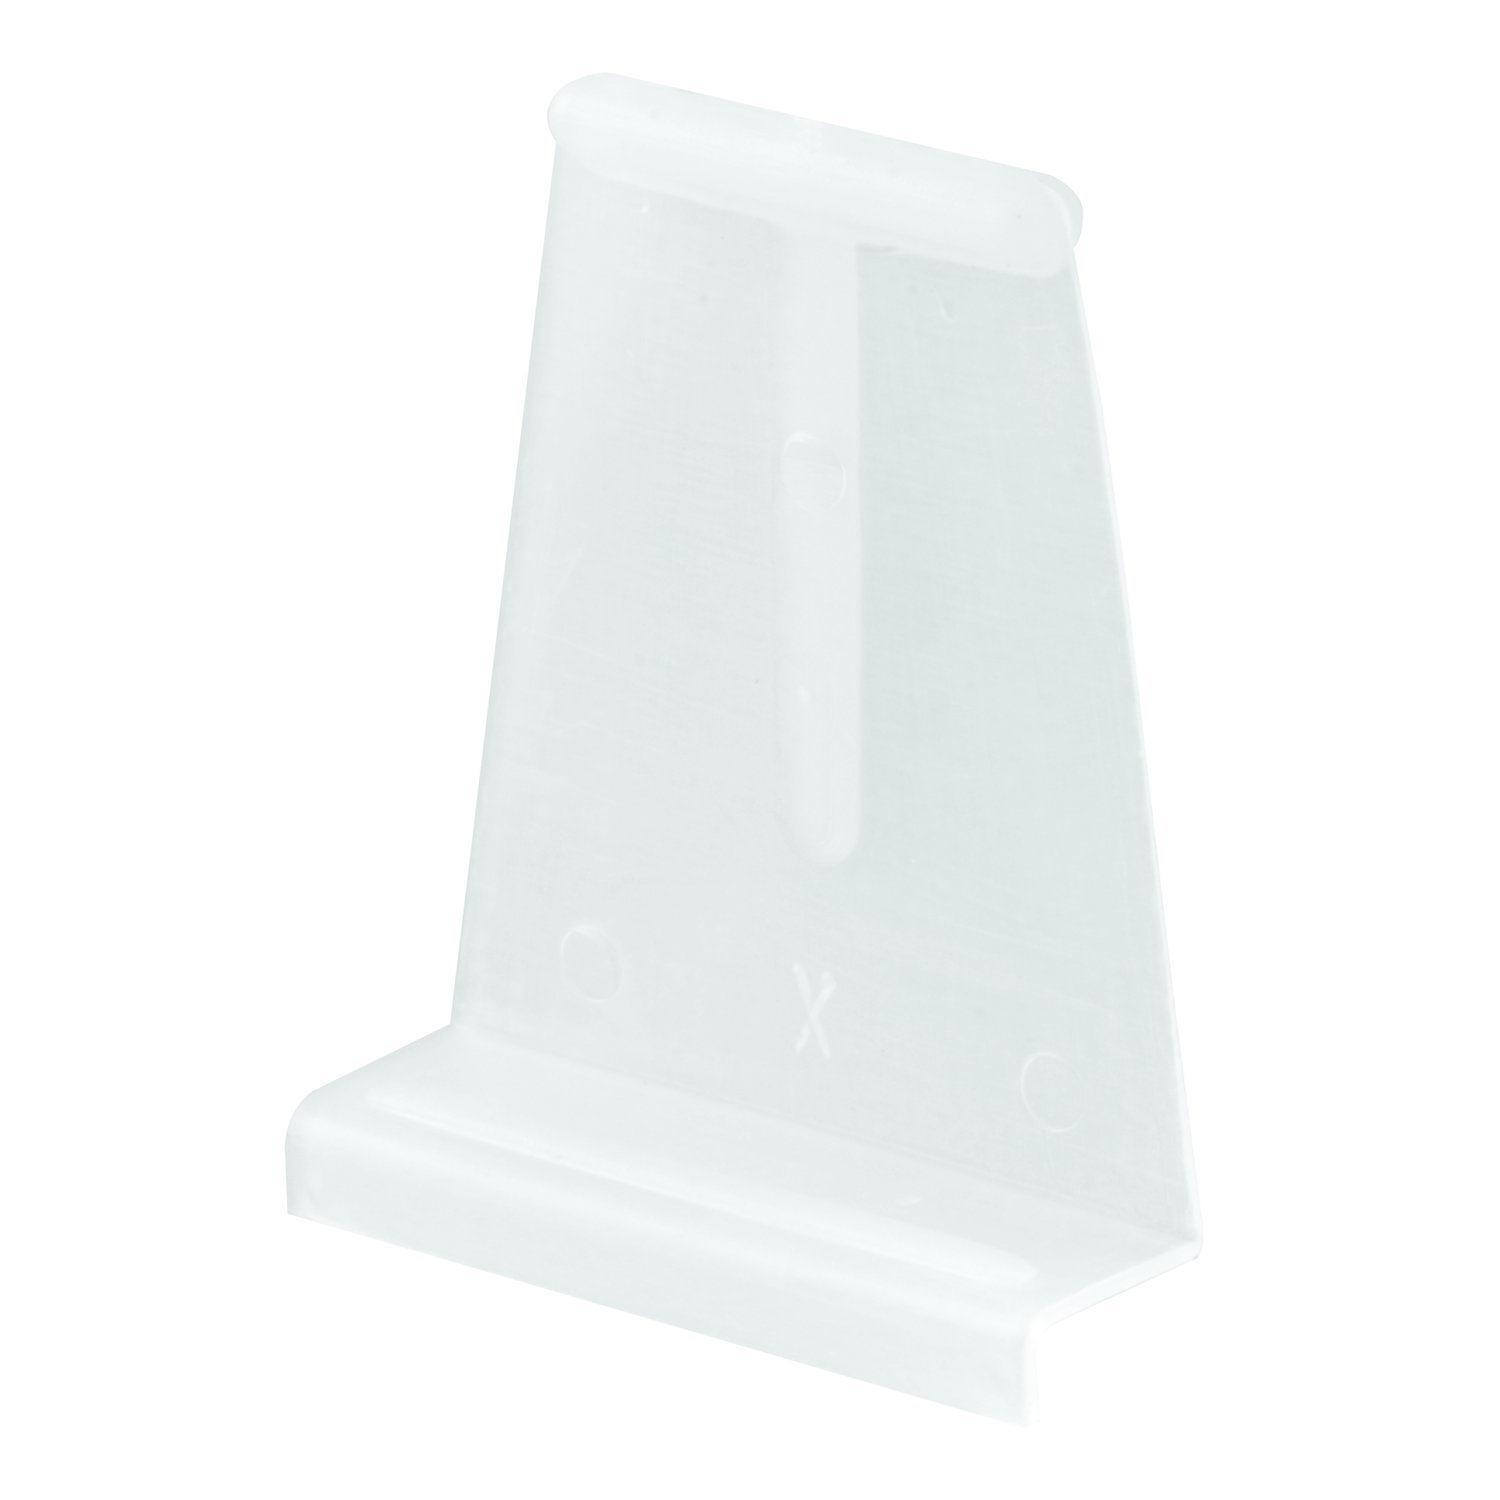 Prime-Line Products PL 14618 Spline Channel Pull Tabs, White,(Pack of 25)